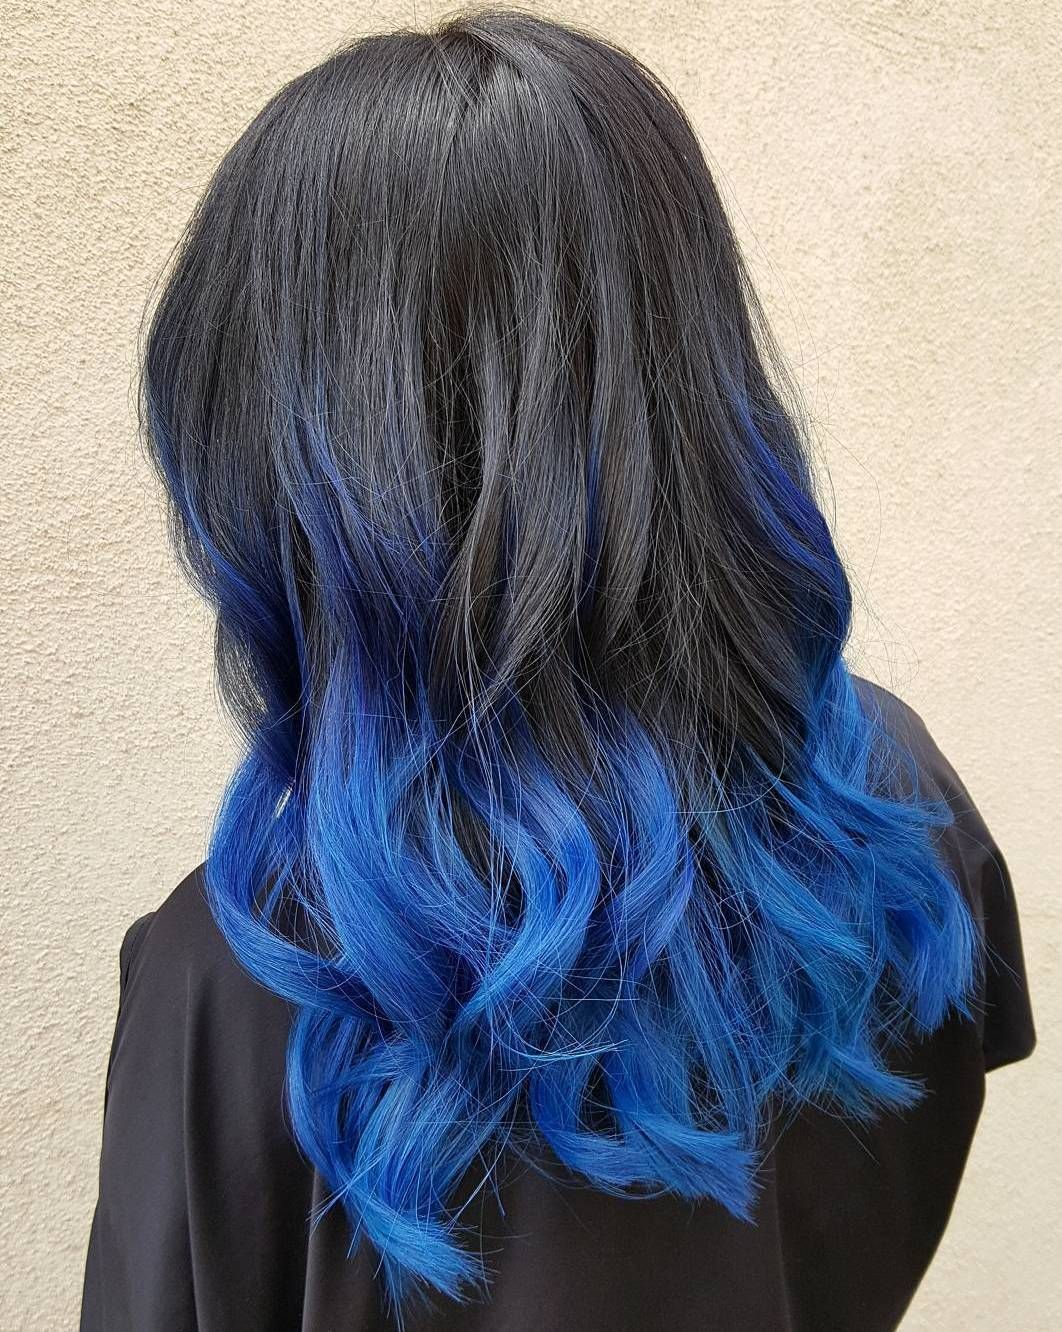 fairylike blue ombre hairstyles balayage highlights balayage